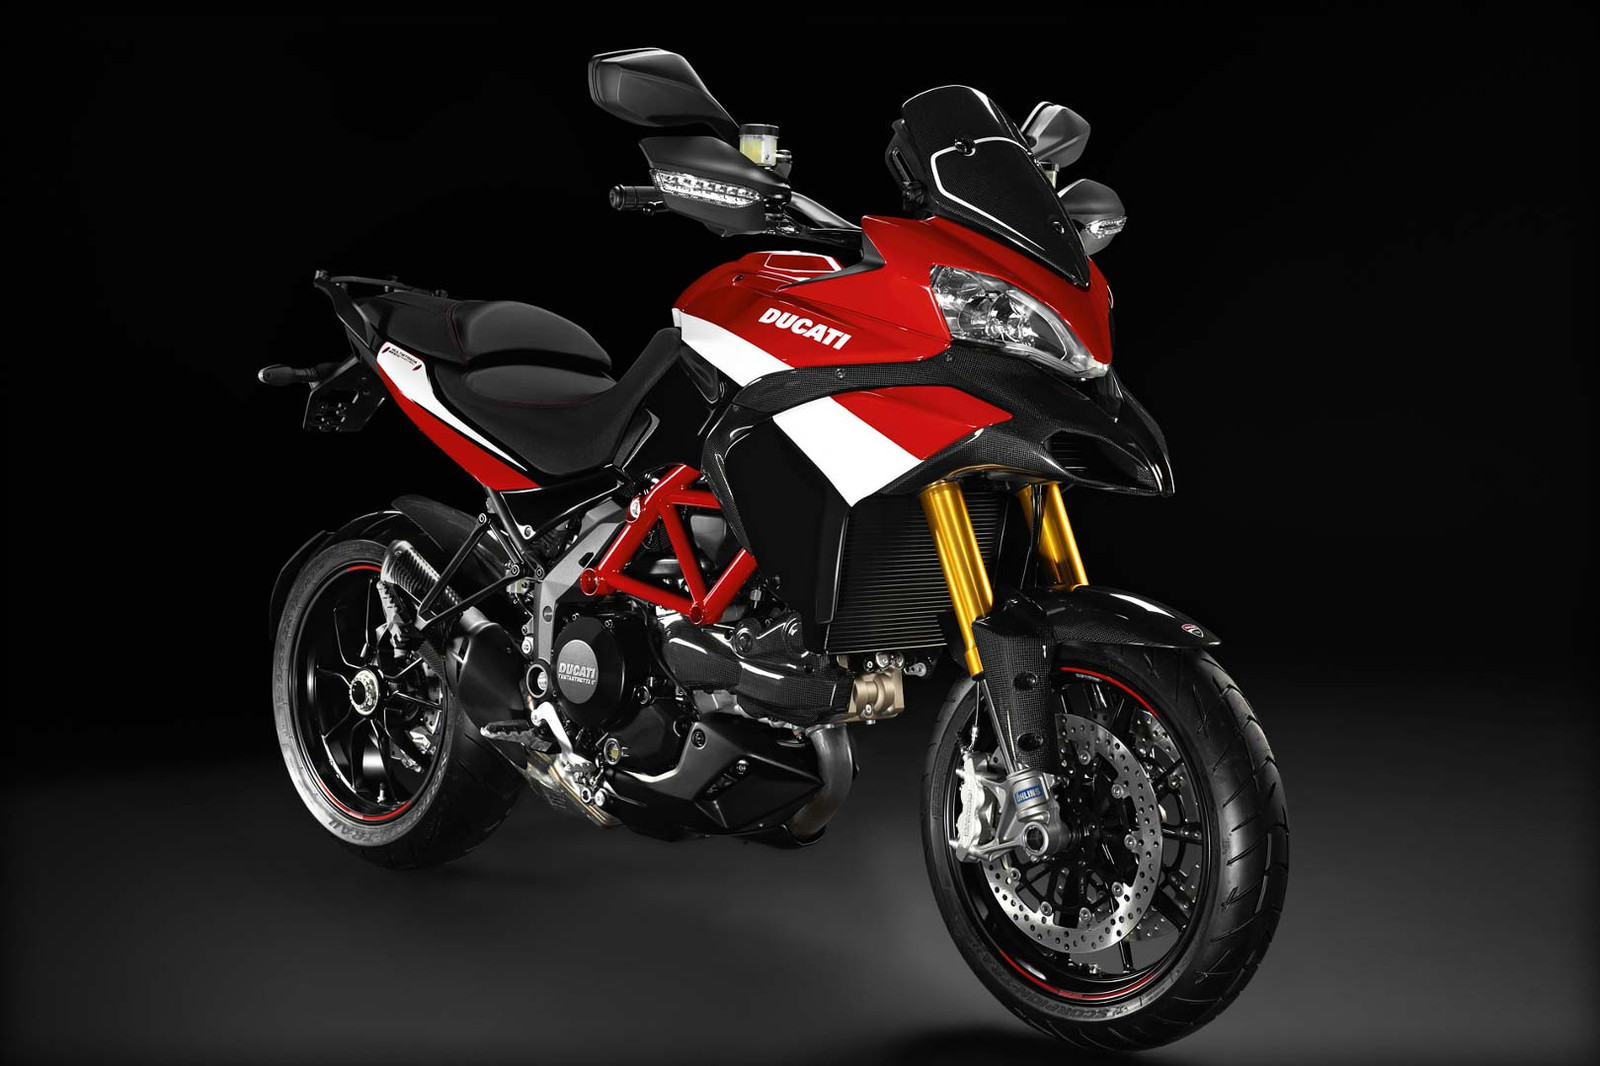 2011ducatimultistrada1200spikespeak